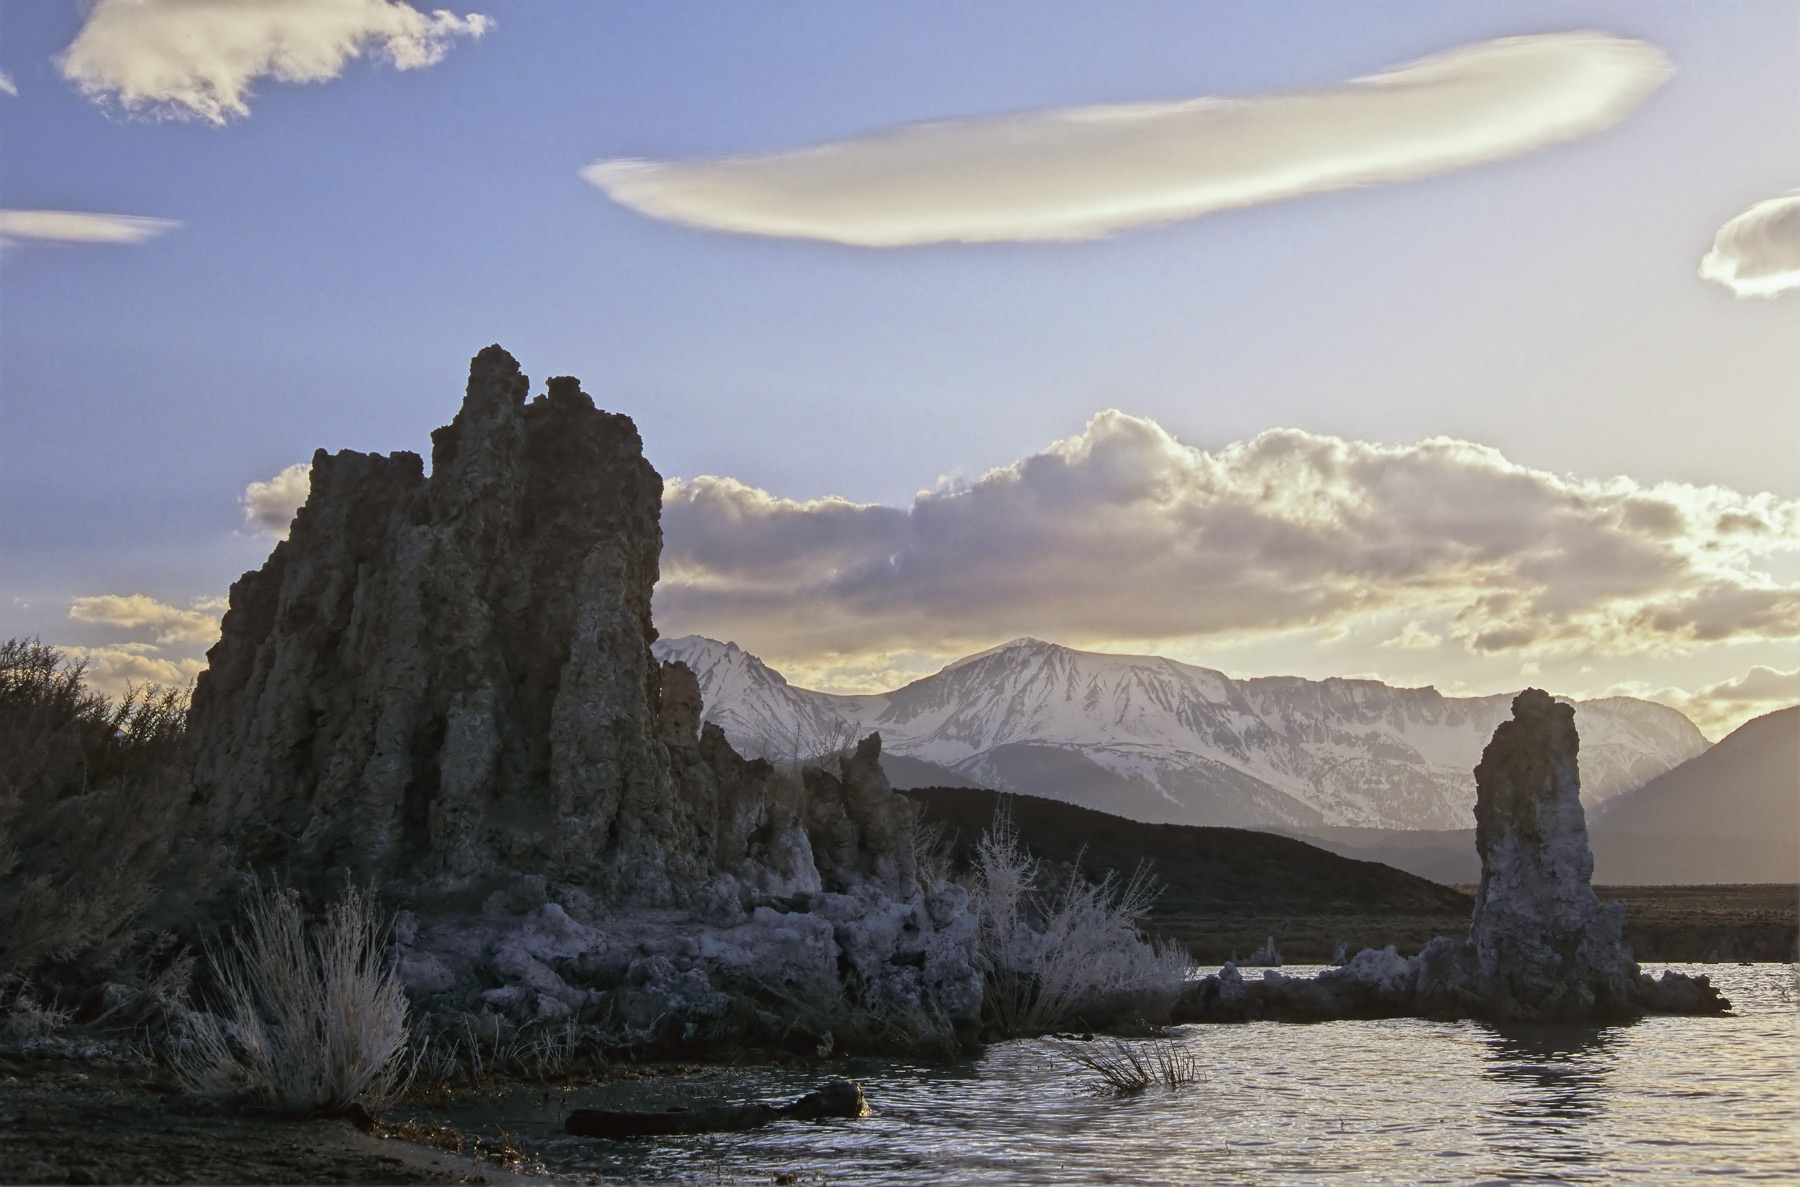 calcite towers known as tufas generated from the extremely high mineral content of Mono Lake festoon the borders creating an...